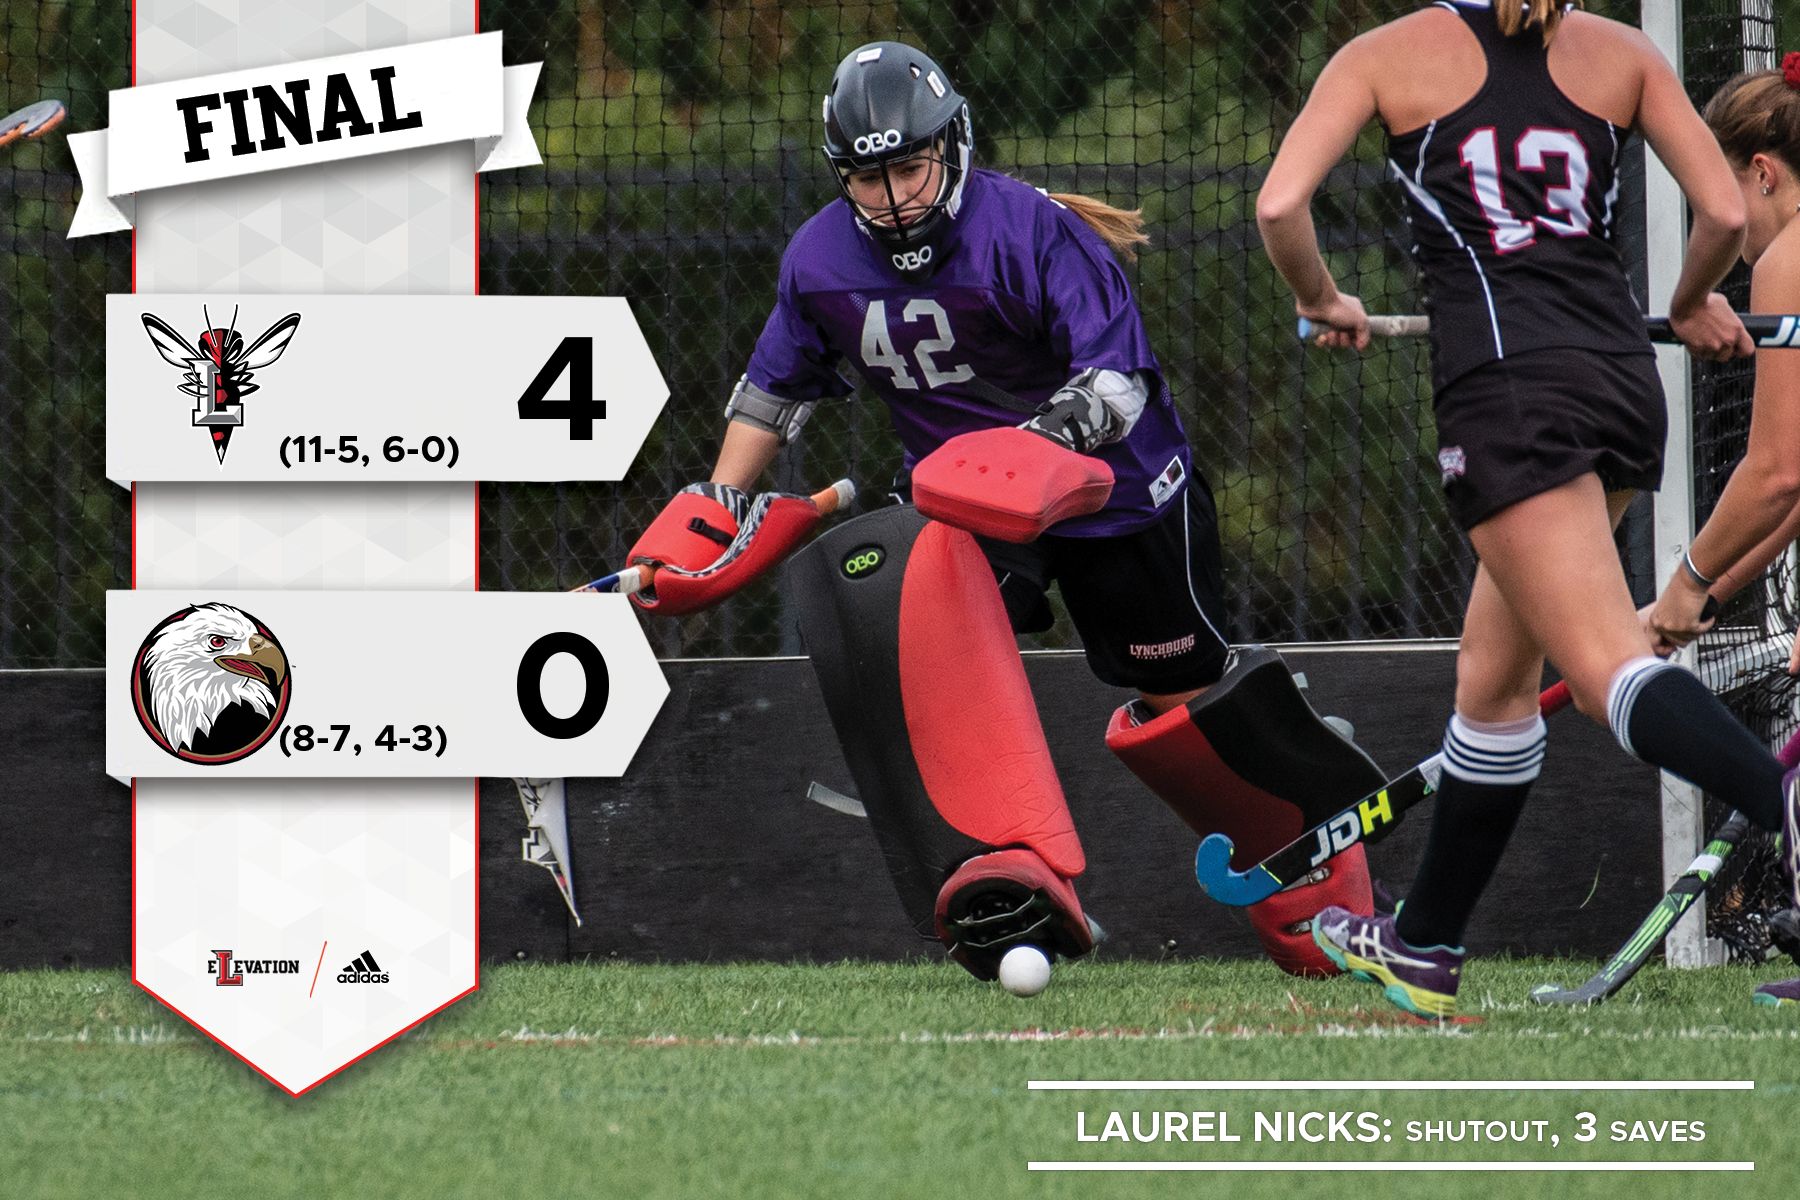 Field hockey goalie chasing ball. Graphic showing 4-0 final score and Lynchburg logo.